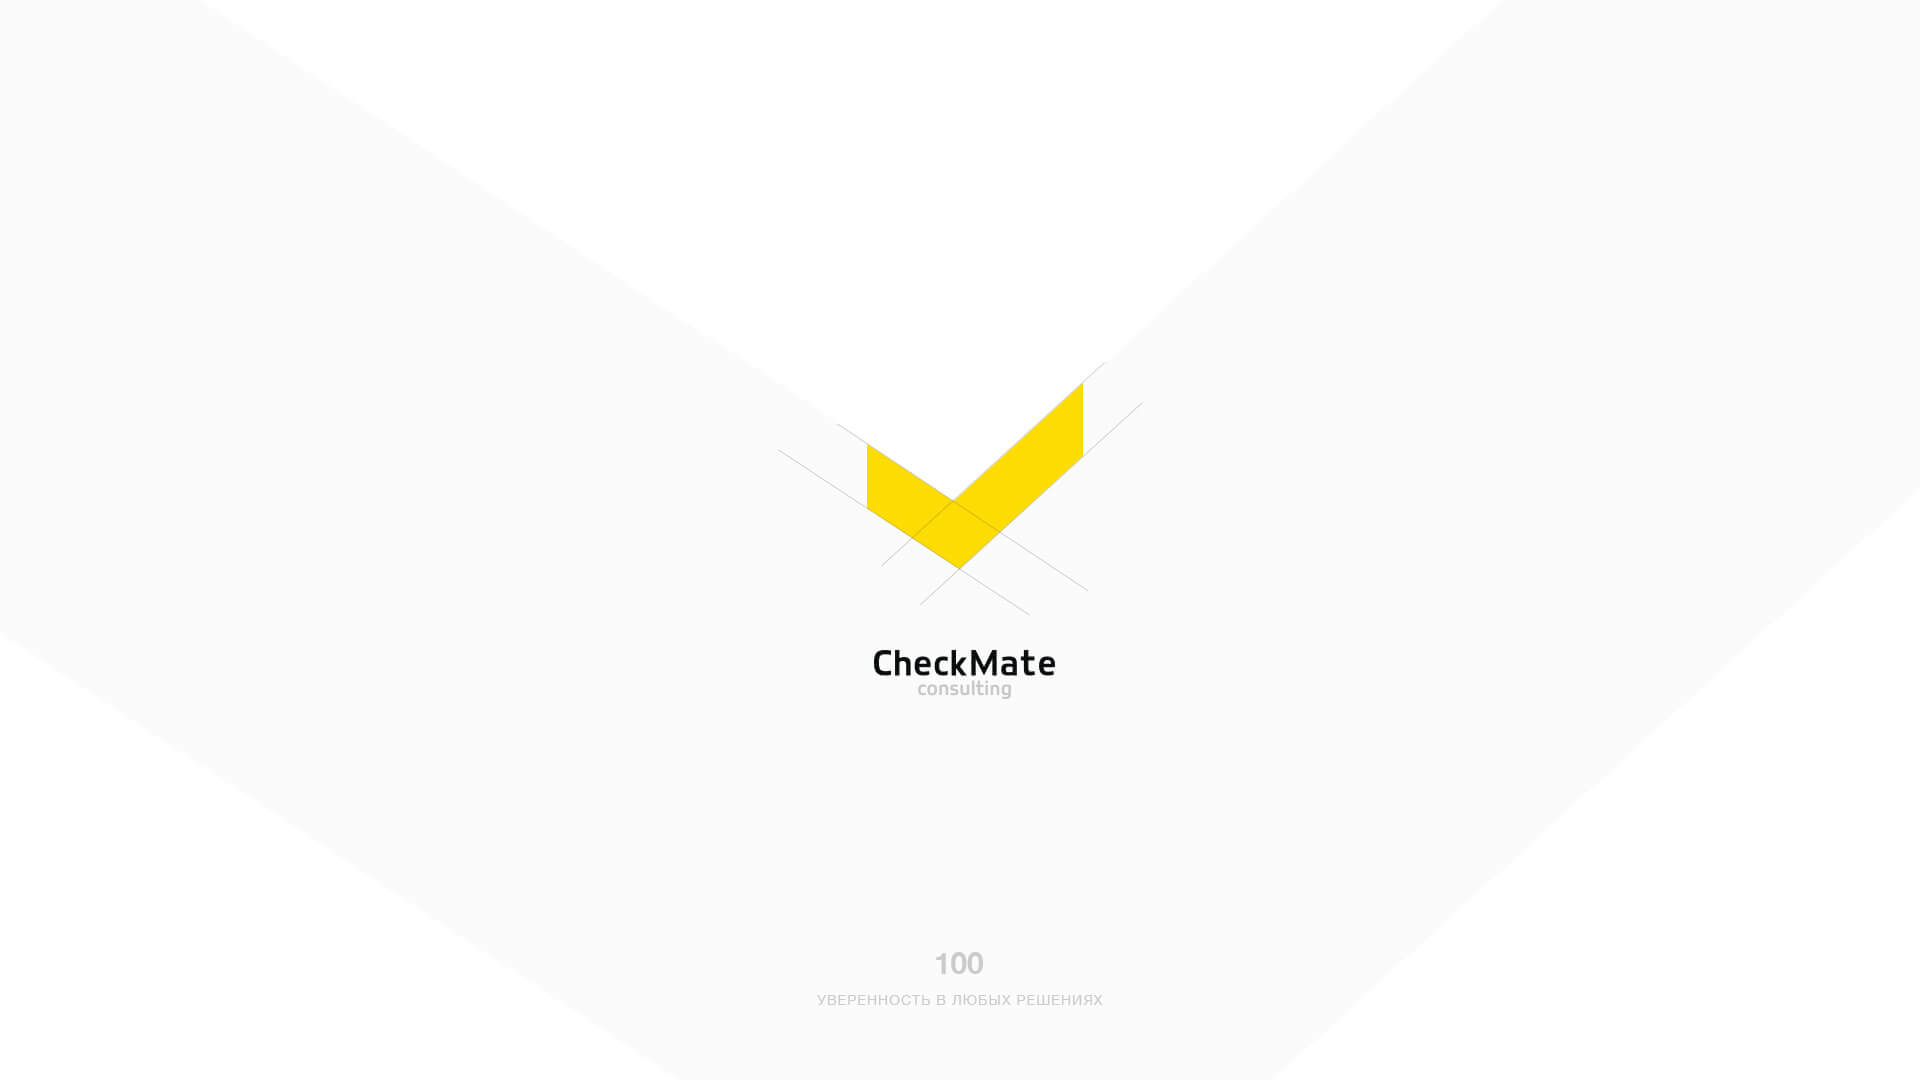 Checkmate_01_Home_00_1.0